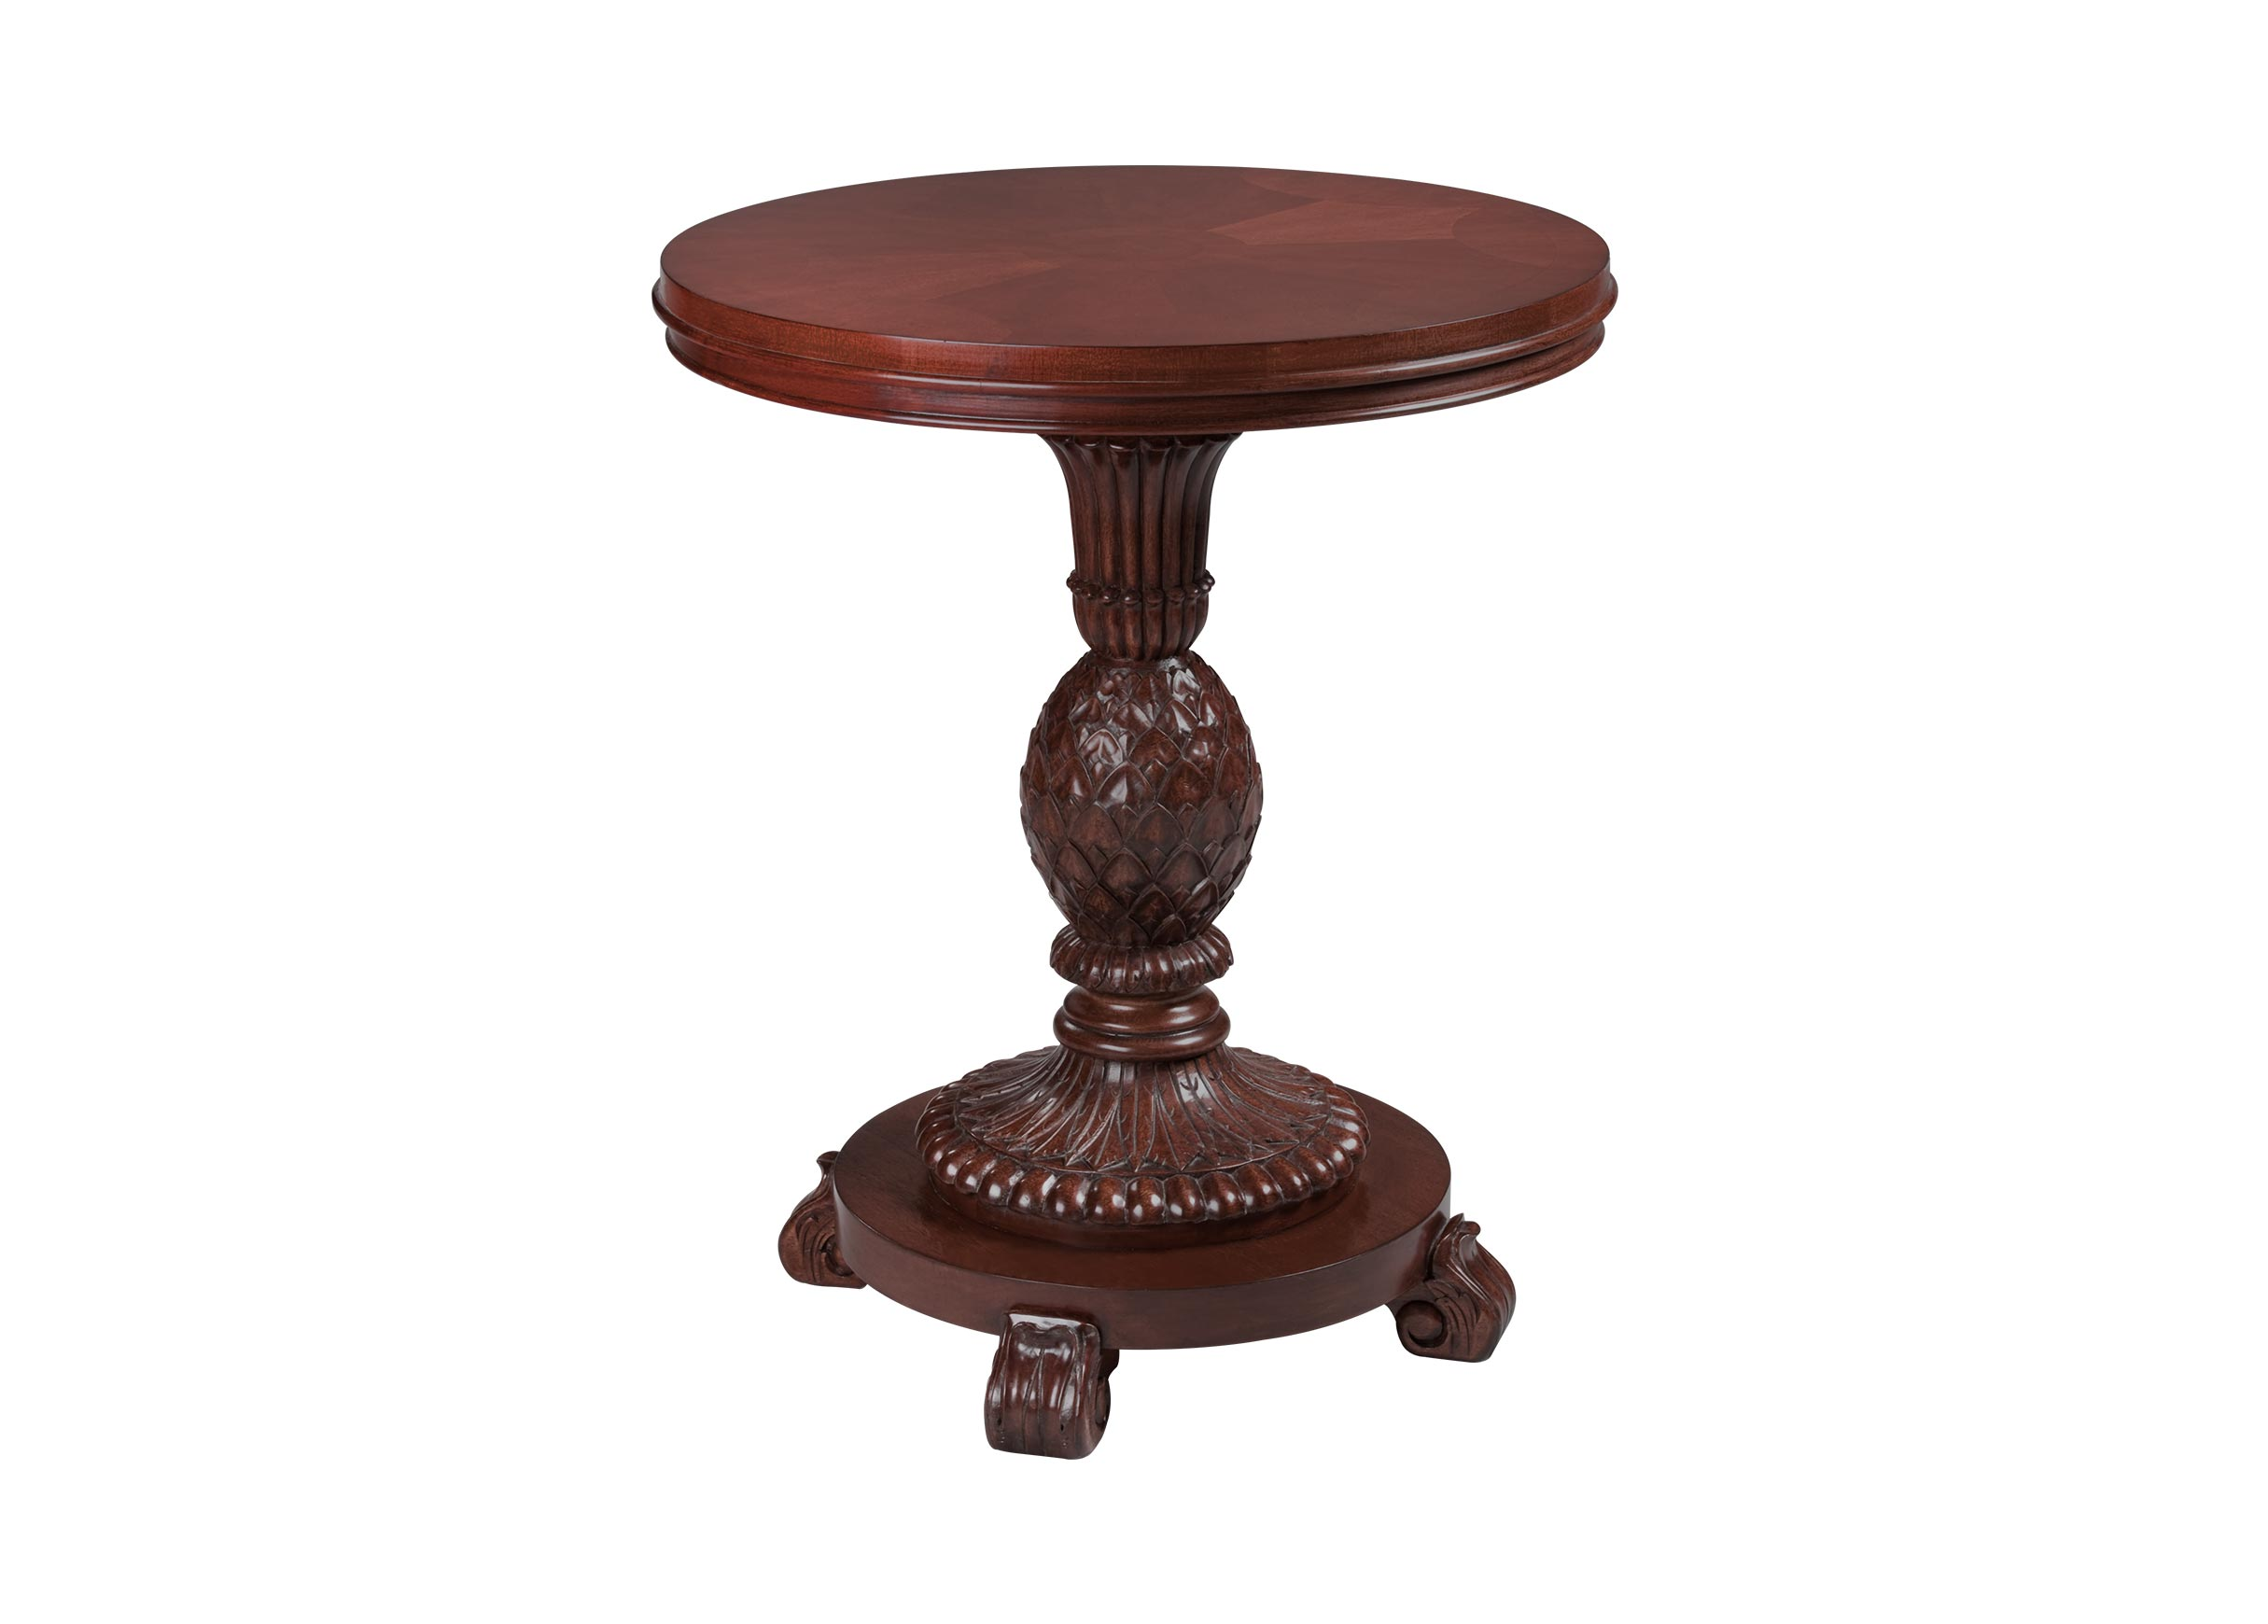 sophia accent table tables ethan allen with baskets cherry wood dining room furniture inch wide nightstand hooker end wooden shelving units funky chairs outdoor side brown